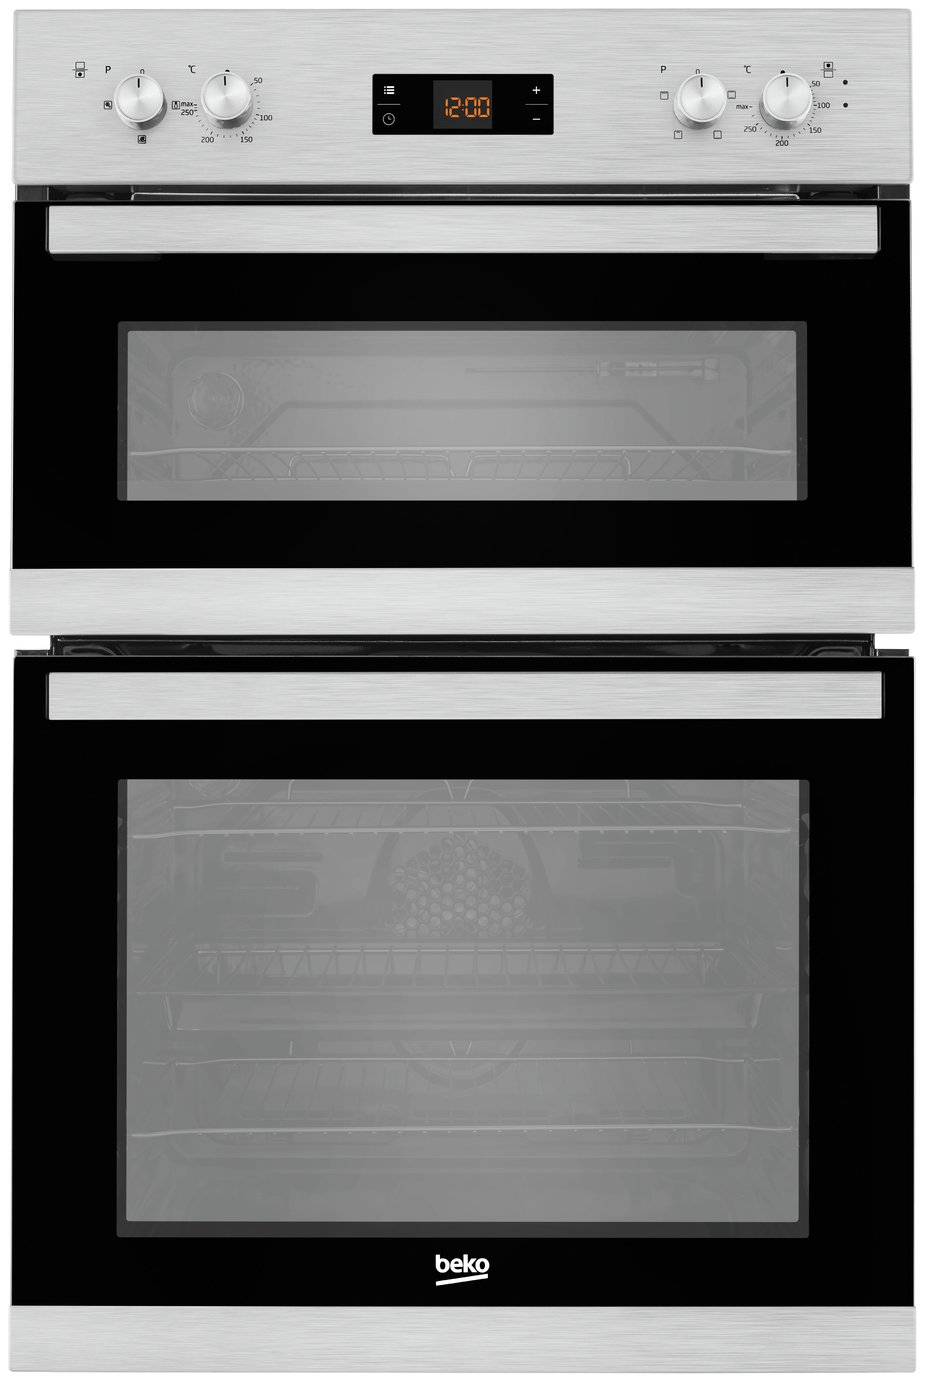 Beko BADF22300X Built In Double Electric Oven - S/Steel